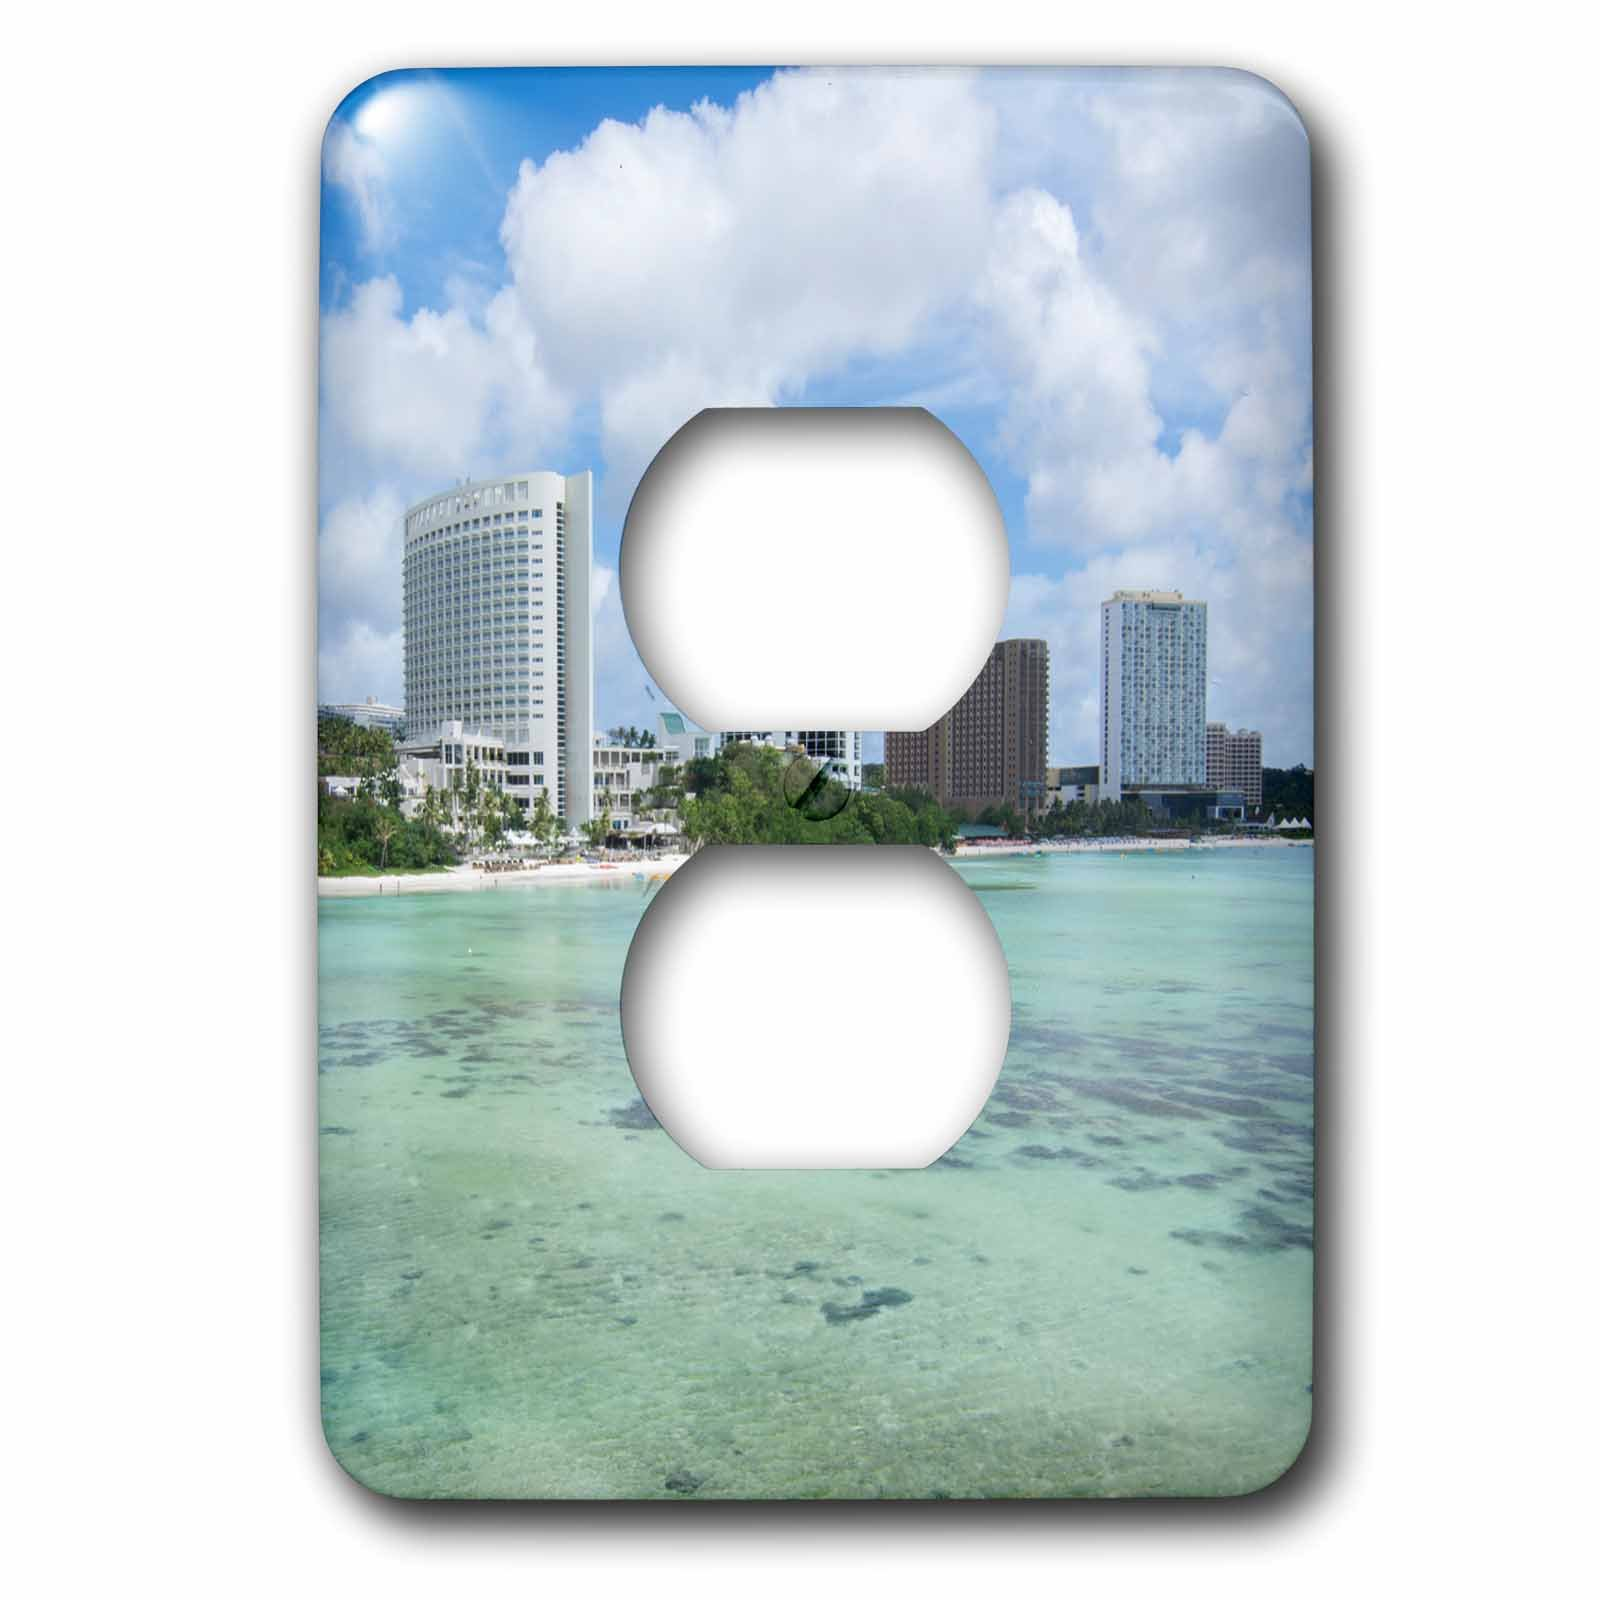 3dRose Danita Delimont - Cities - Guam Territory. Hotels line beach with clear tropical waters. - Light Switch Covers - 2 plug outlet cover (lsp_278126_6)